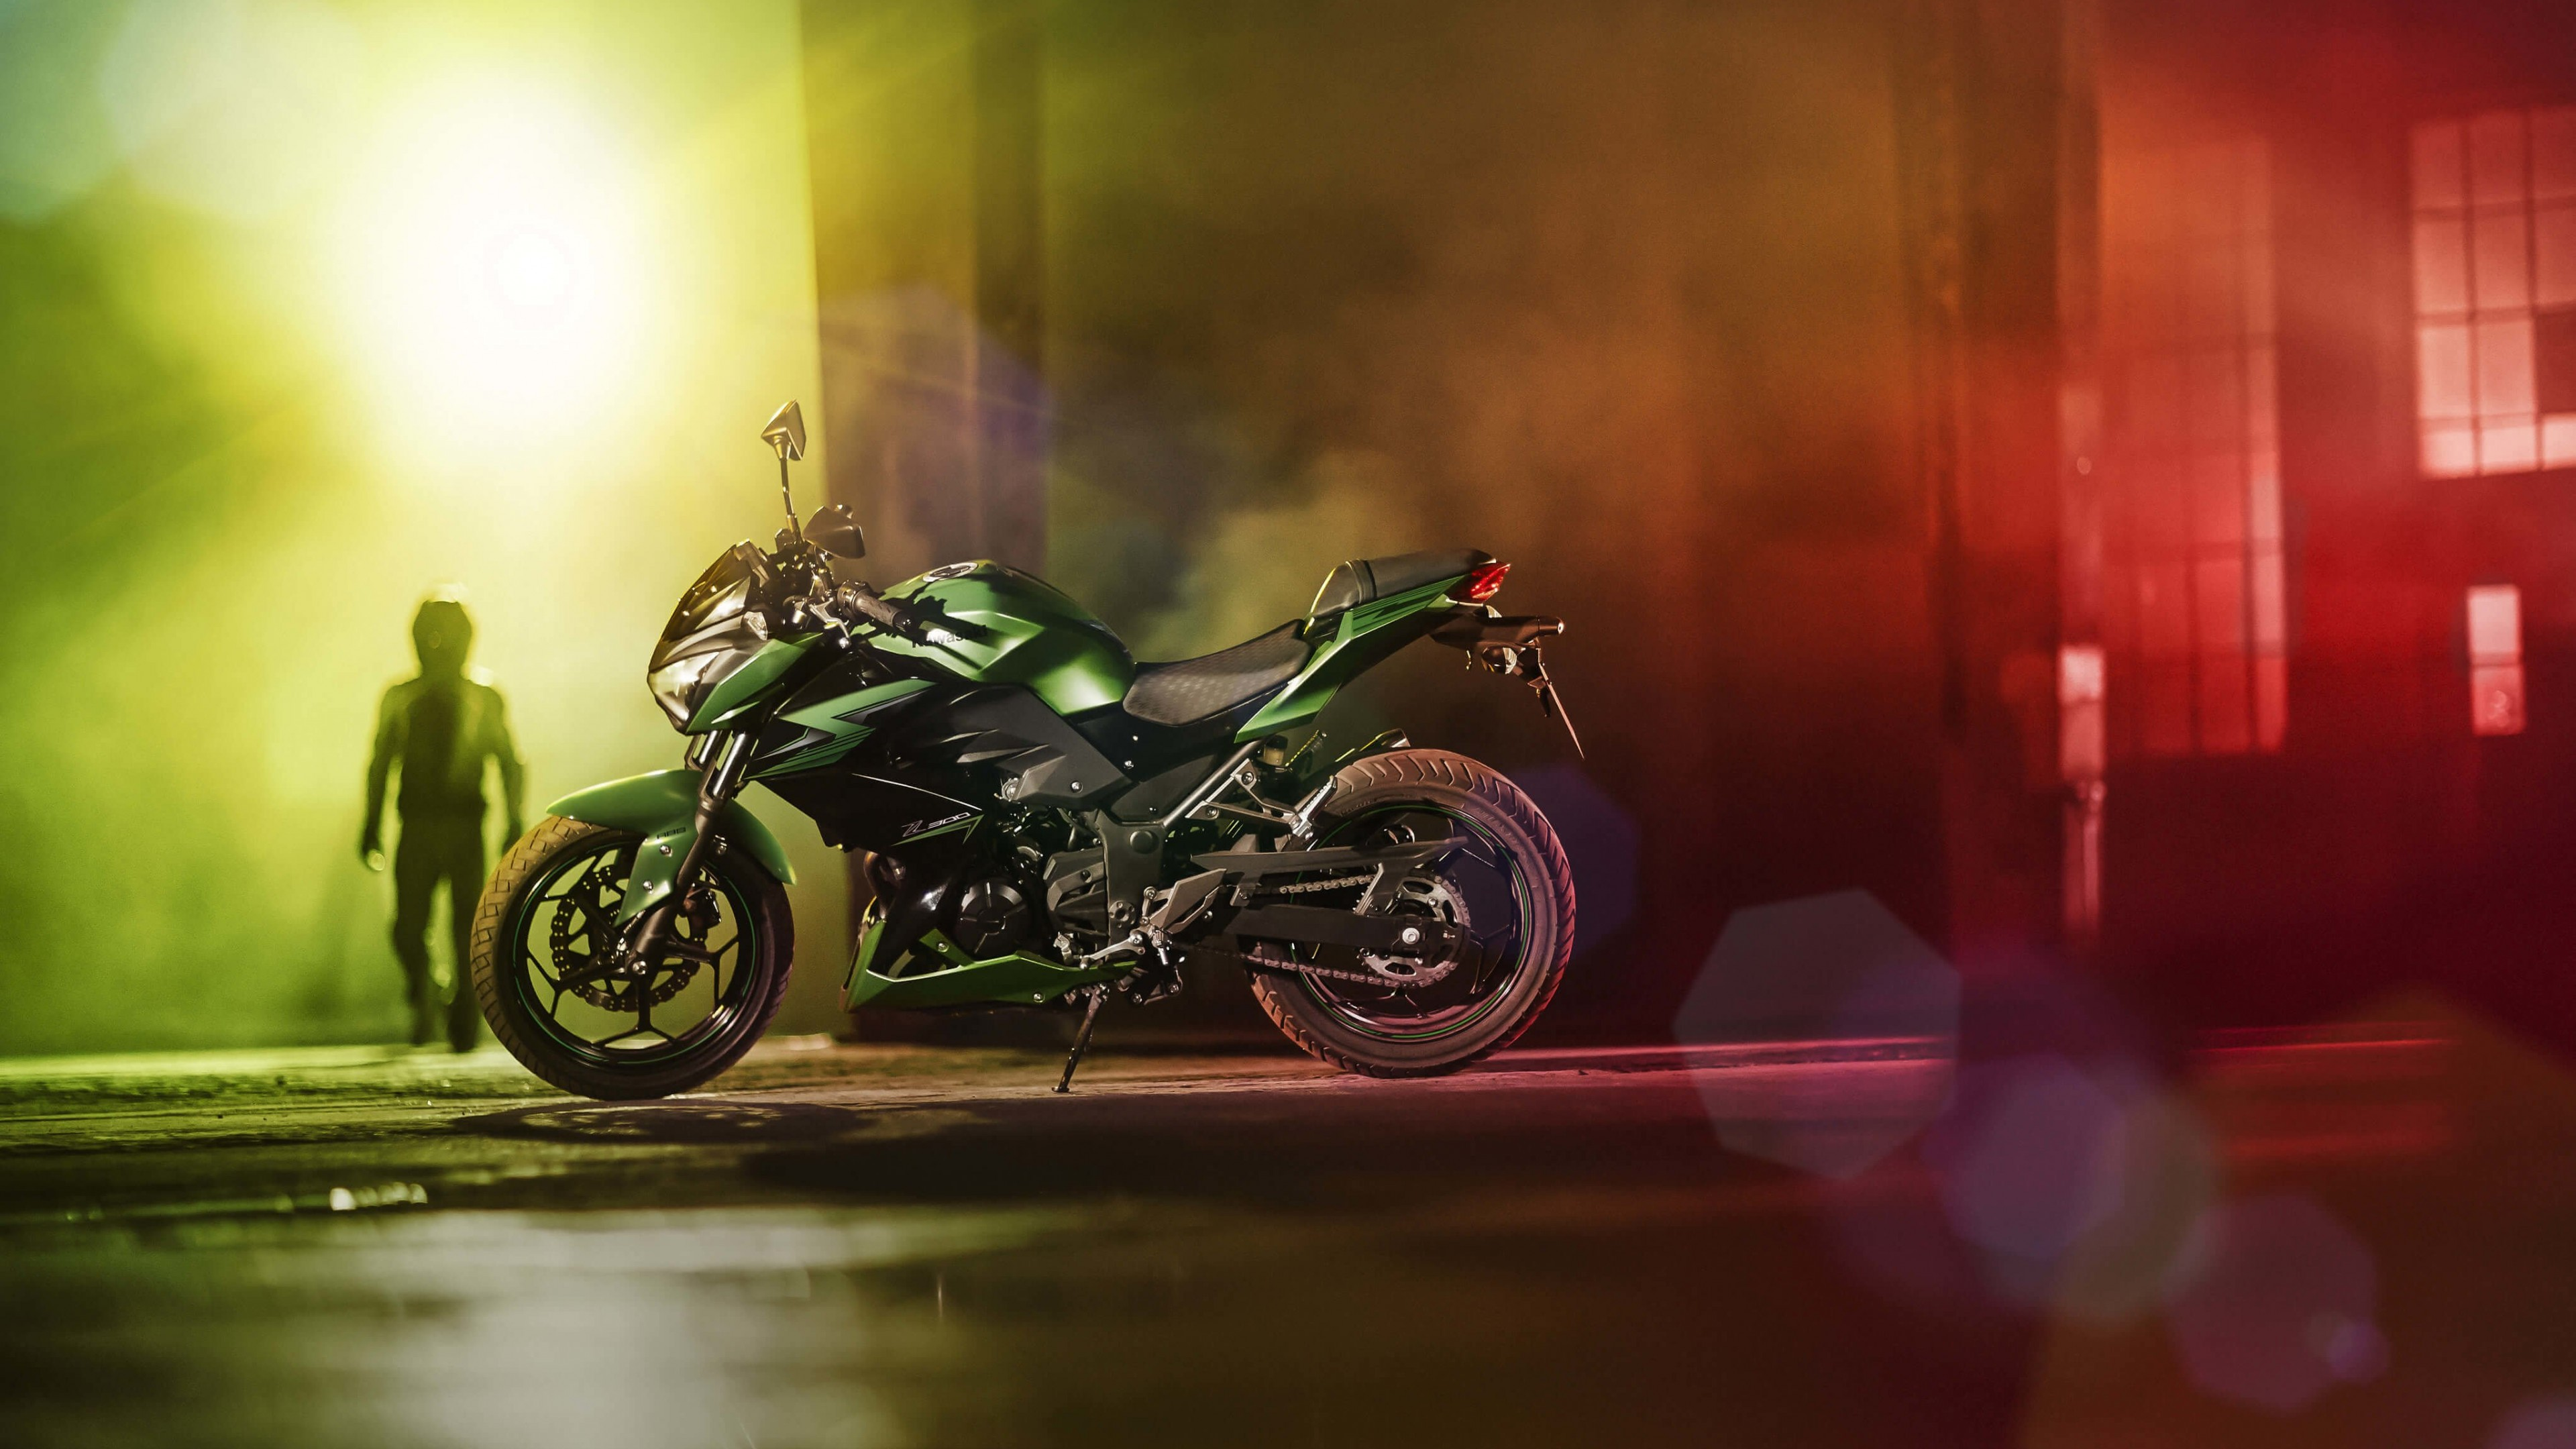 Kawasaki Z300 Wallpaper for Desktop 4K 3840x2160